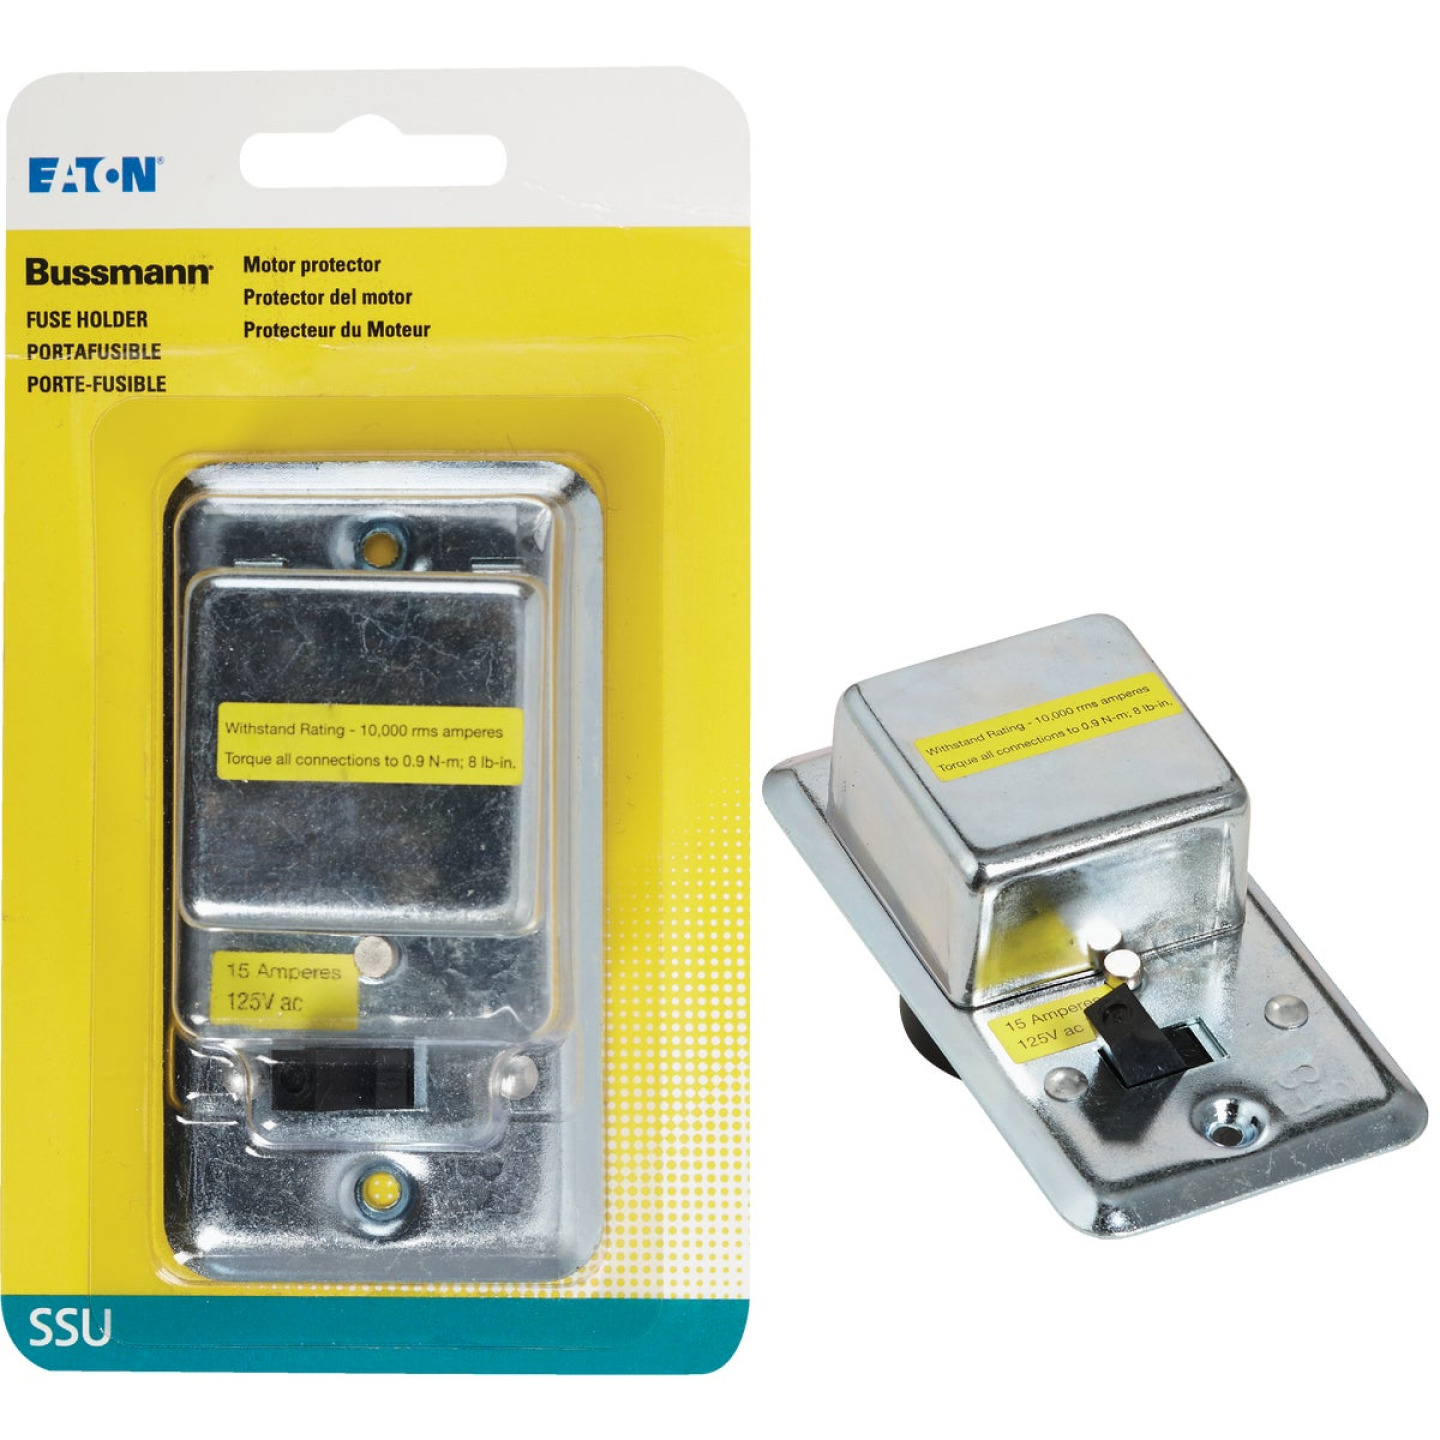 Bussmann 125V 15A 2-1/4 In. Handy Box Fuse Holder Cover Plate Image 1